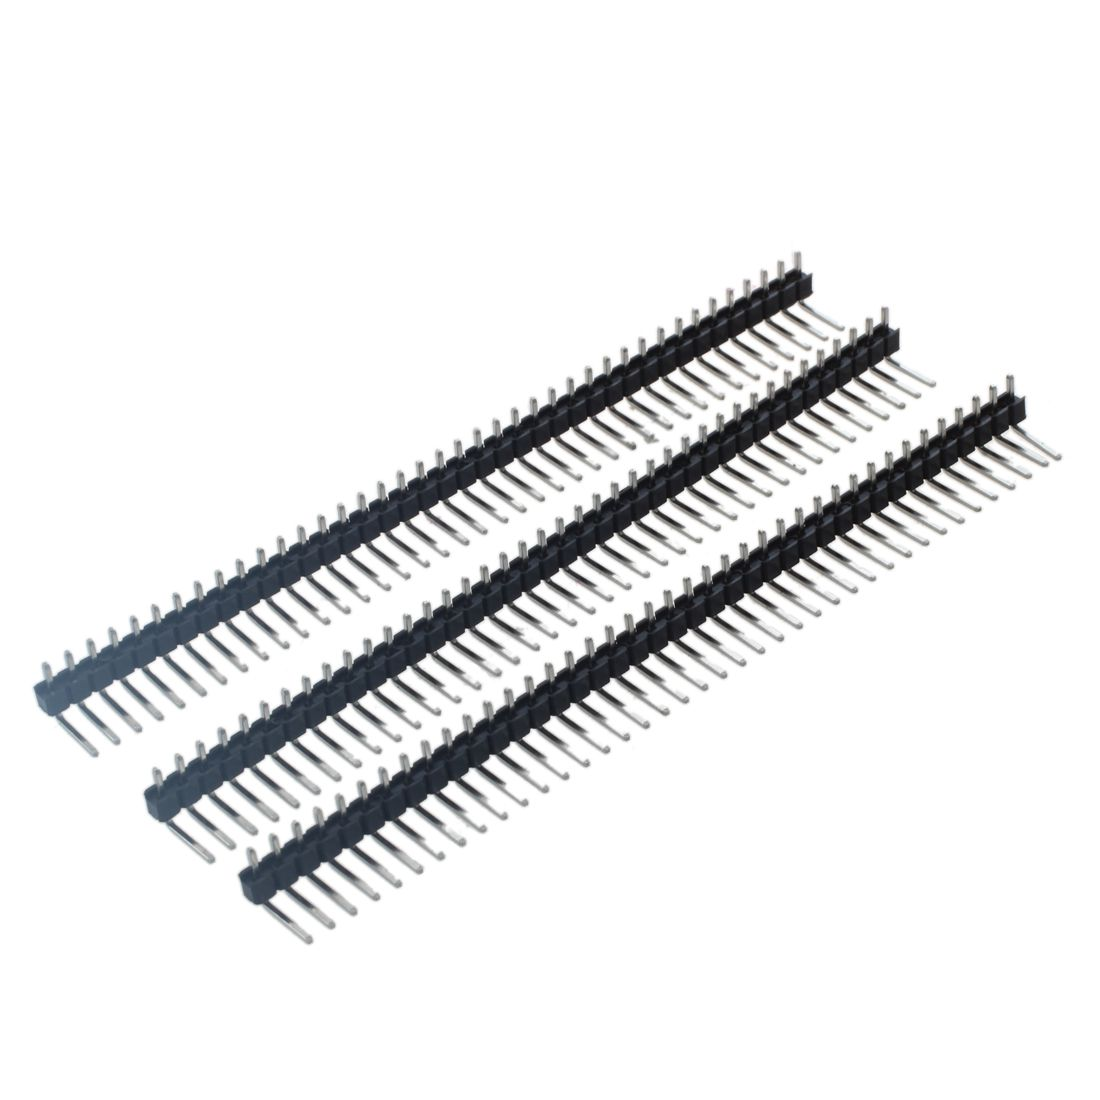 3 Pcs 40 Pins 2 54mm Pitch Right Angle Pcb Board Pin